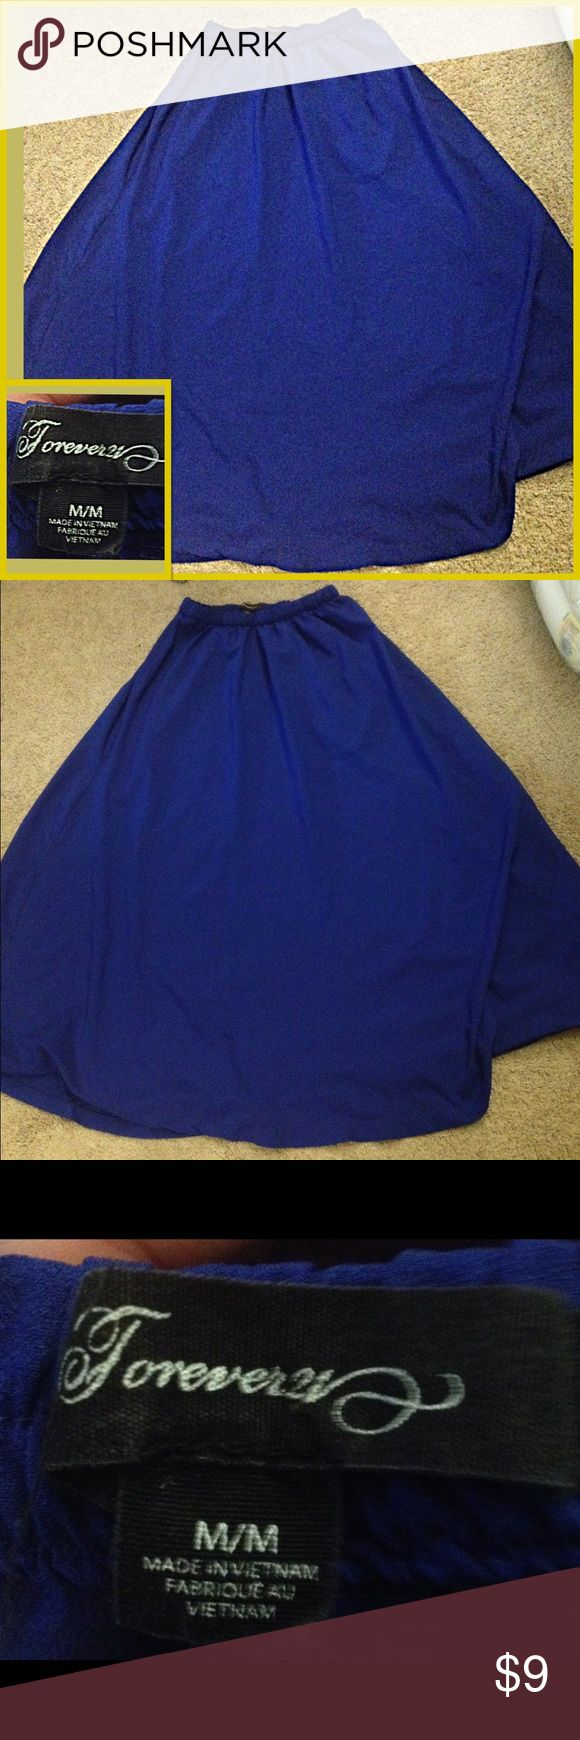 Forever21 Blue maxi skirt Maxi Skirt Brand is Forever 21 size is medium. shell 100% polyester. Flow look and lightweight. Elastic waist band Forever 21 Skirts Maxi